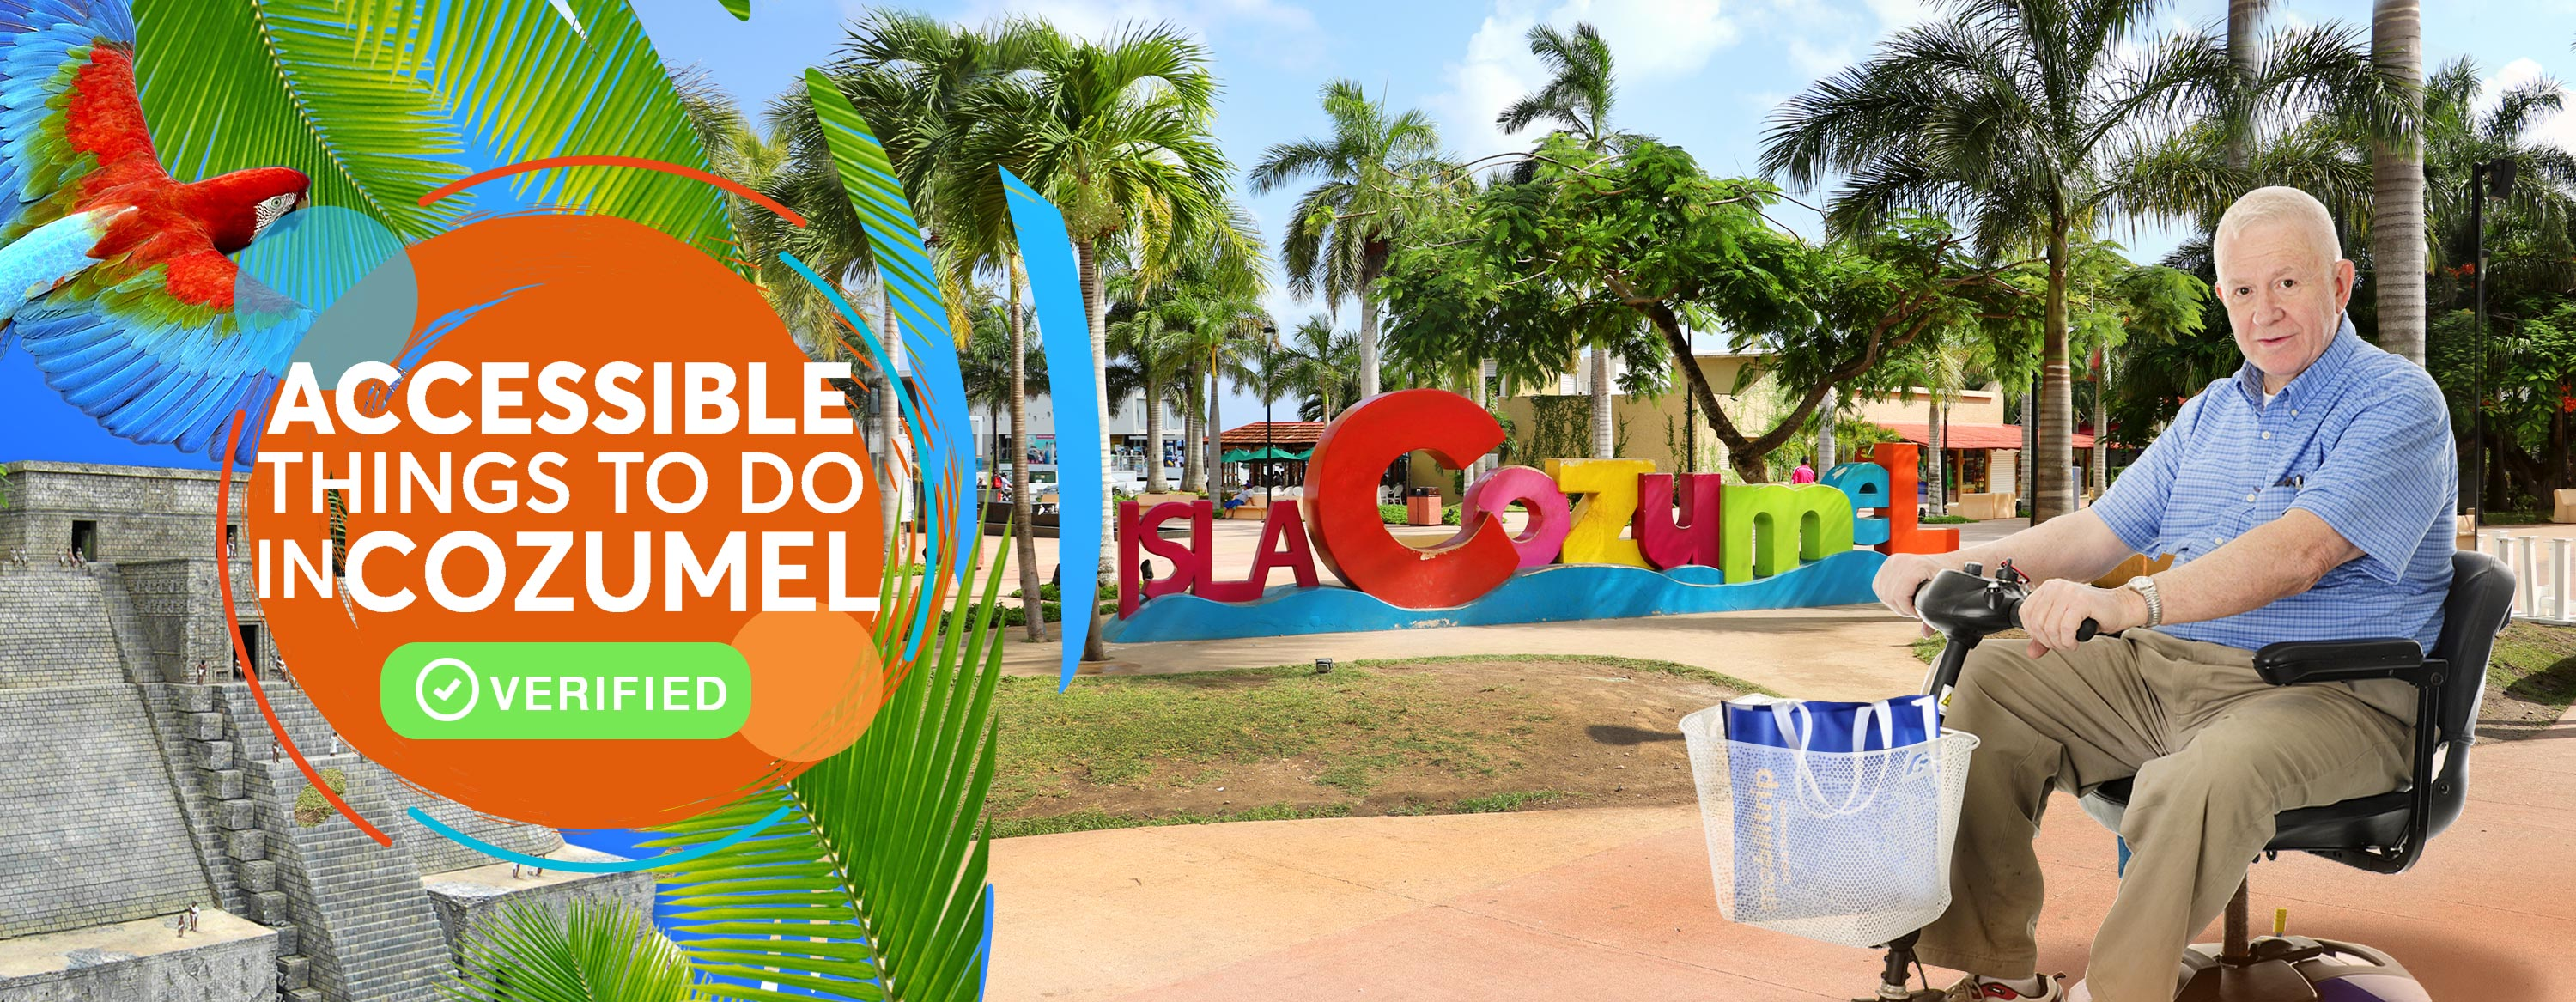 Accessible Things To Do In Cozumel